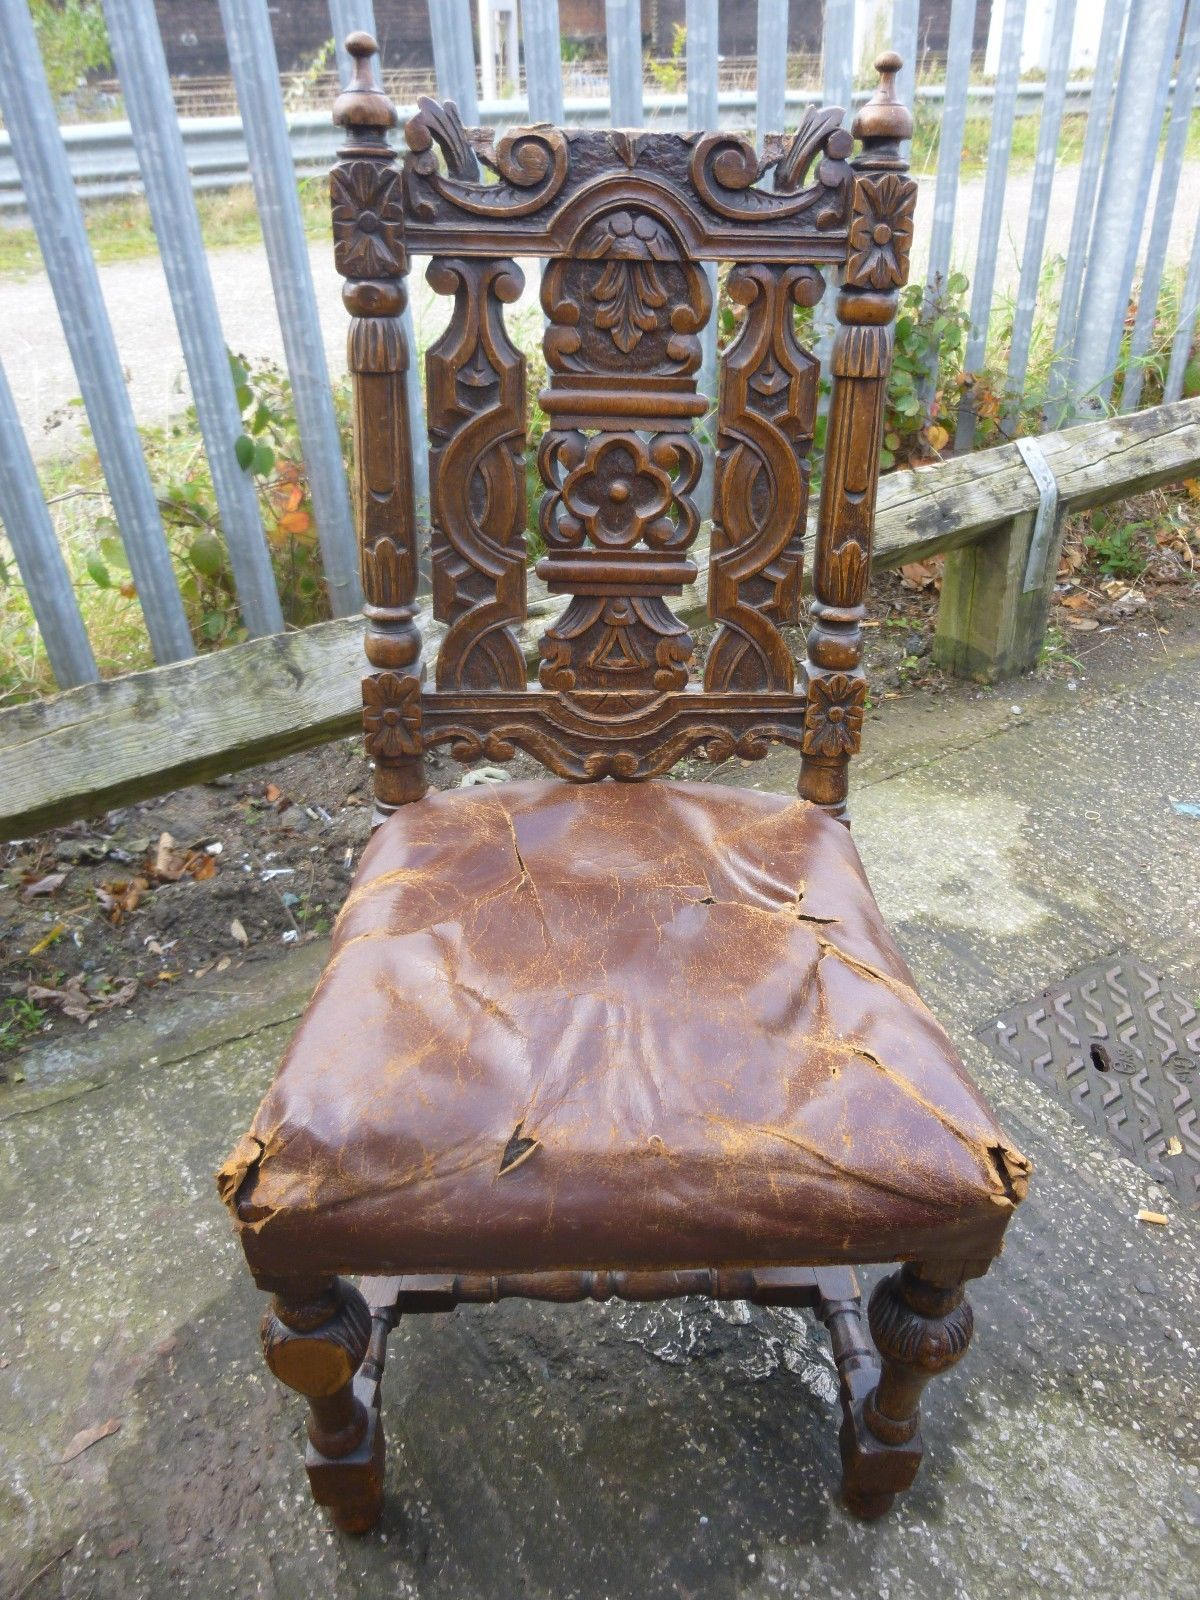 Antique Victorian Gothic Jacobean Solid Oak Carved Design Wooden Chair |  eBay - Antique Victorian Gothic Jacobean Solid Oak Carved Design Wooden